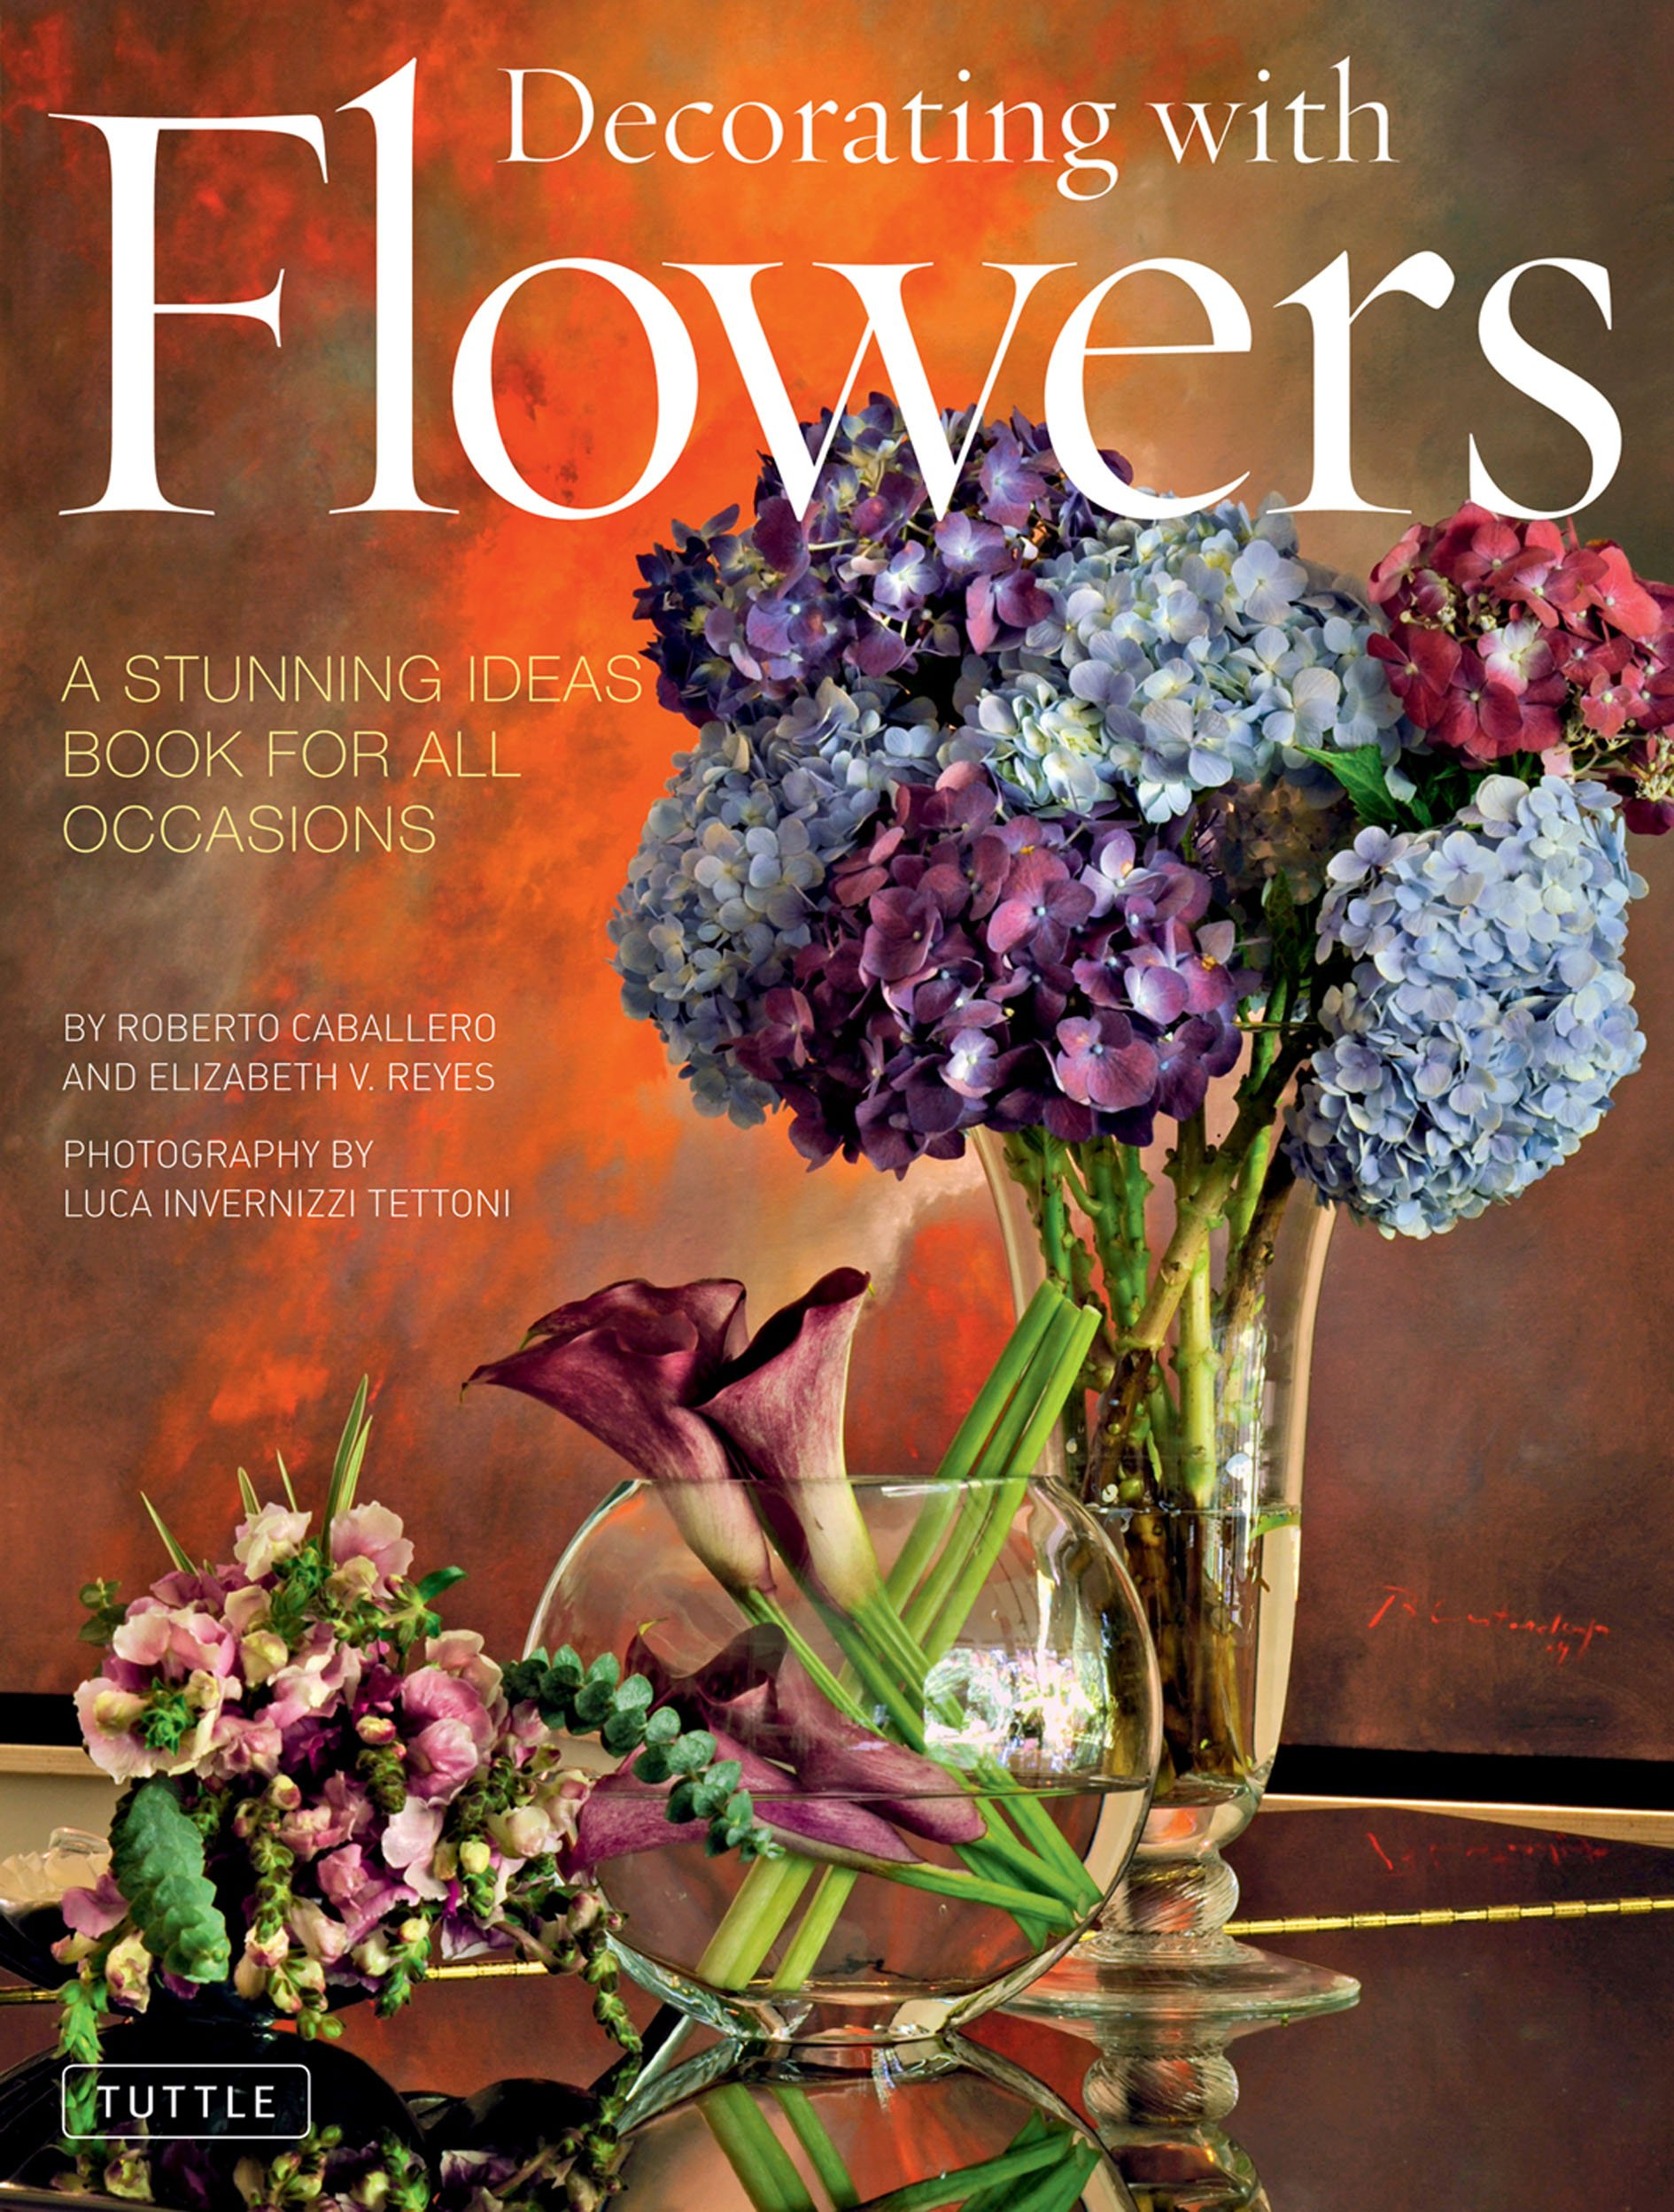 Decorating with Flowers: A Stunning Ideas Book for all Occasions PDF